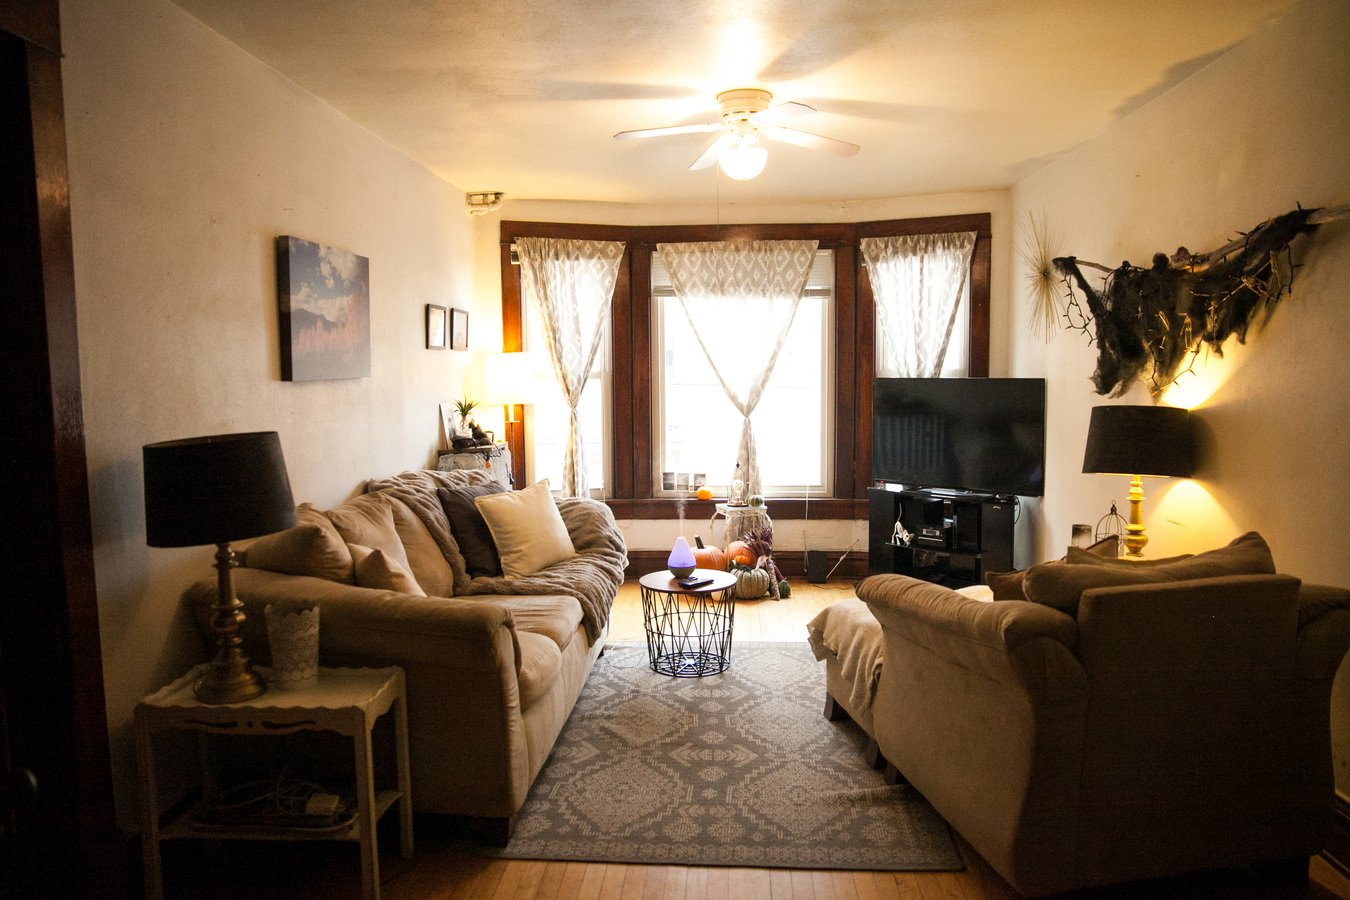 2 Bedrooms 1 Bathroom Apartment for rent at 213 N. Hamilton Street in Madison, WI